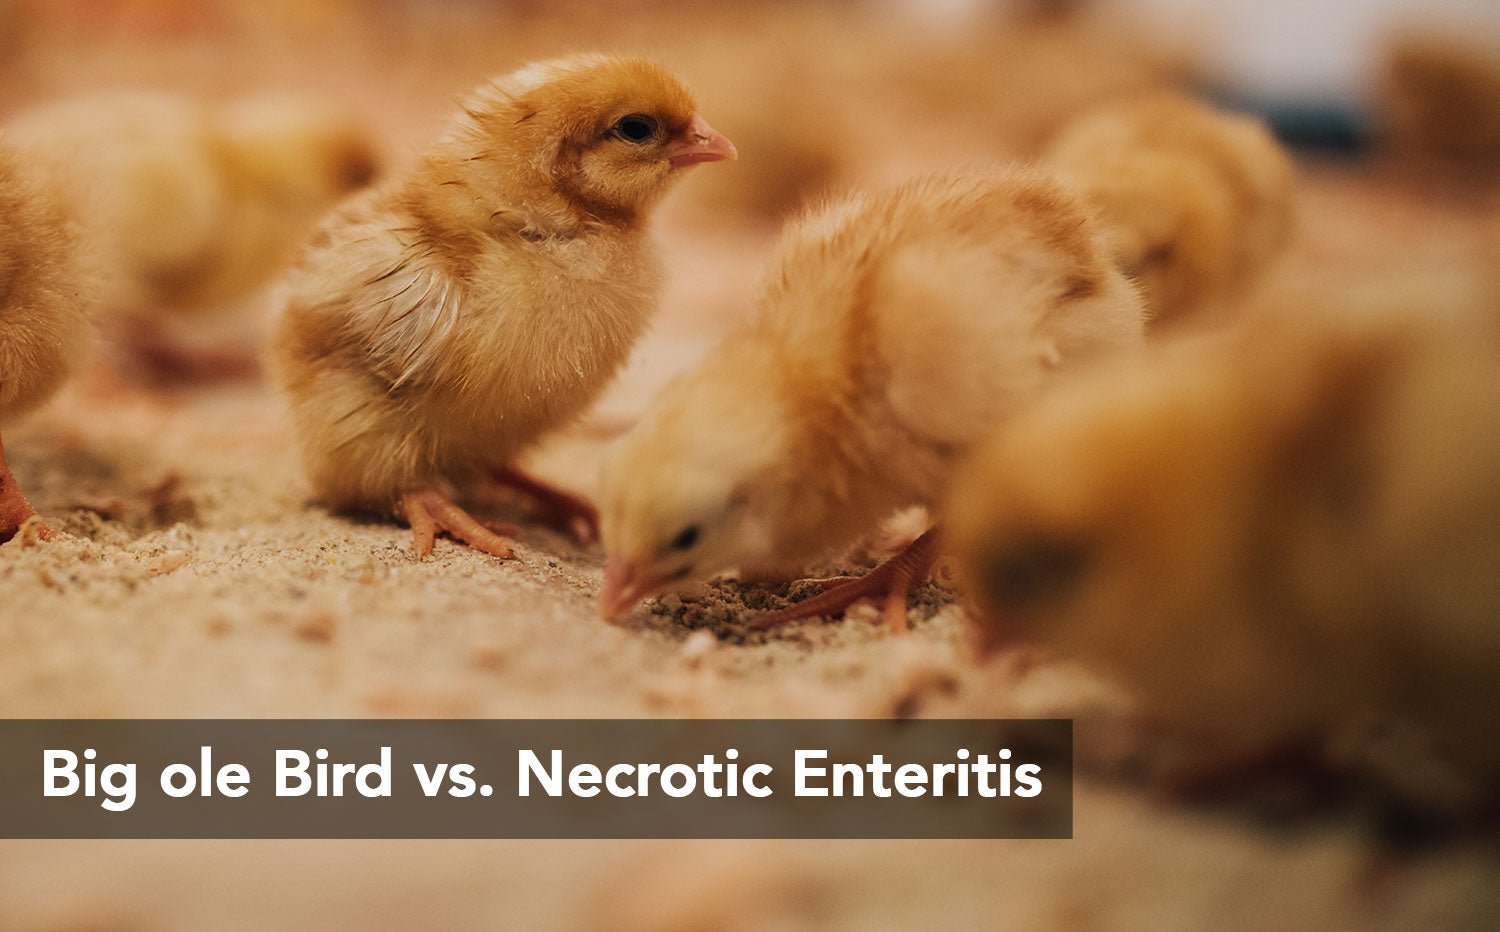 Big ole Bird vs. Necrotic Enteritis